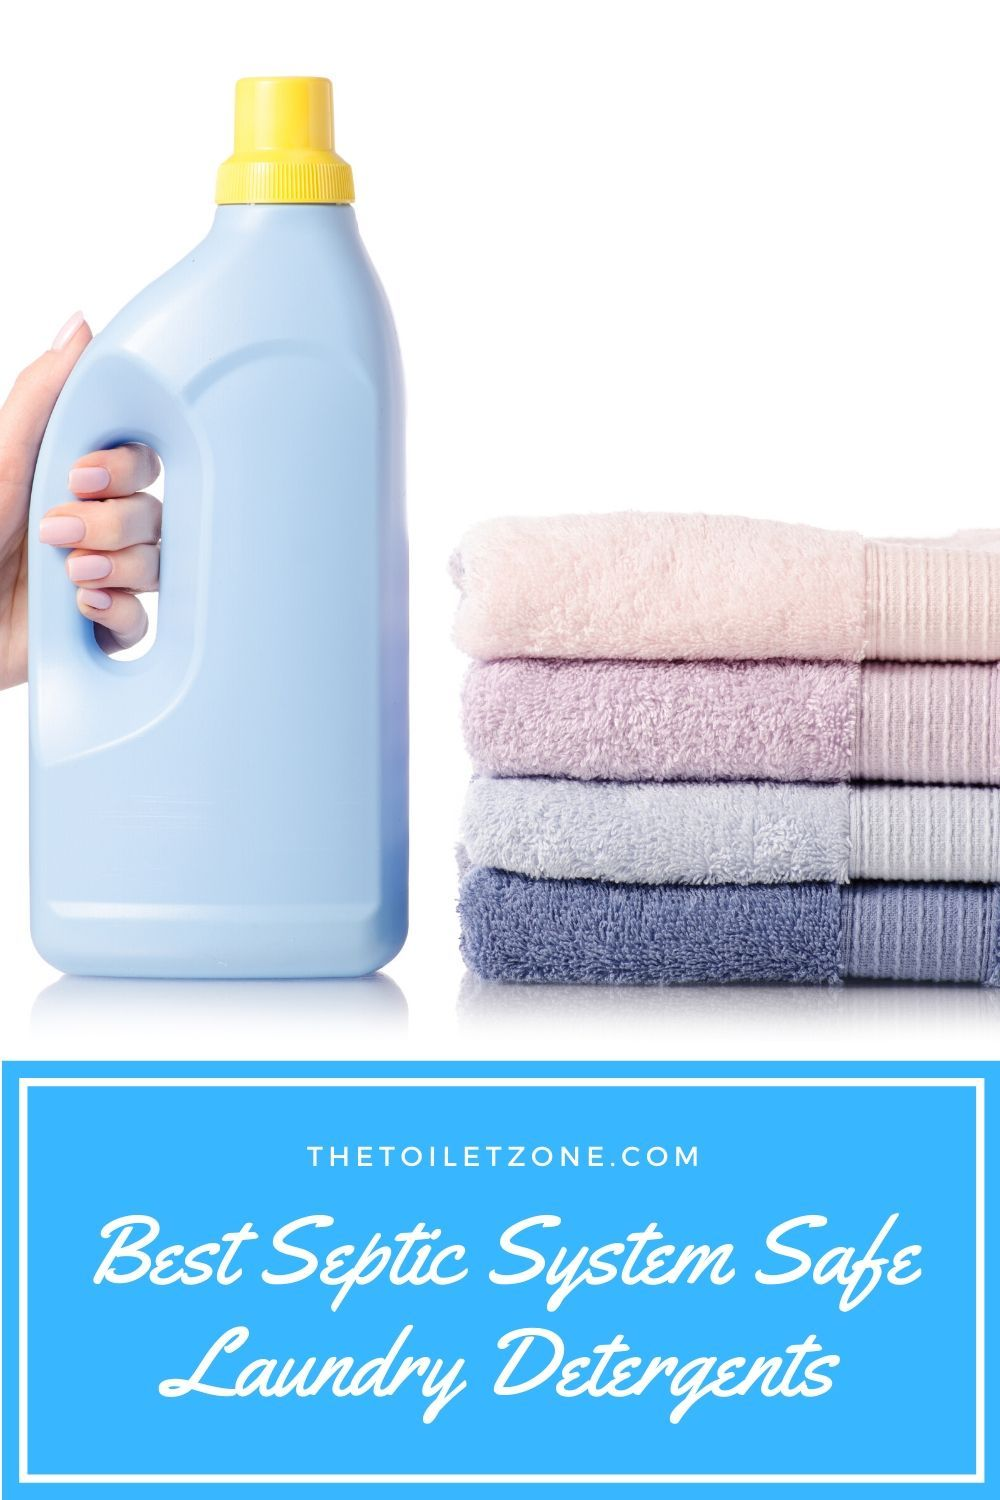 11 Best Septic System Safe Laundry Detergents Septic Tanks In